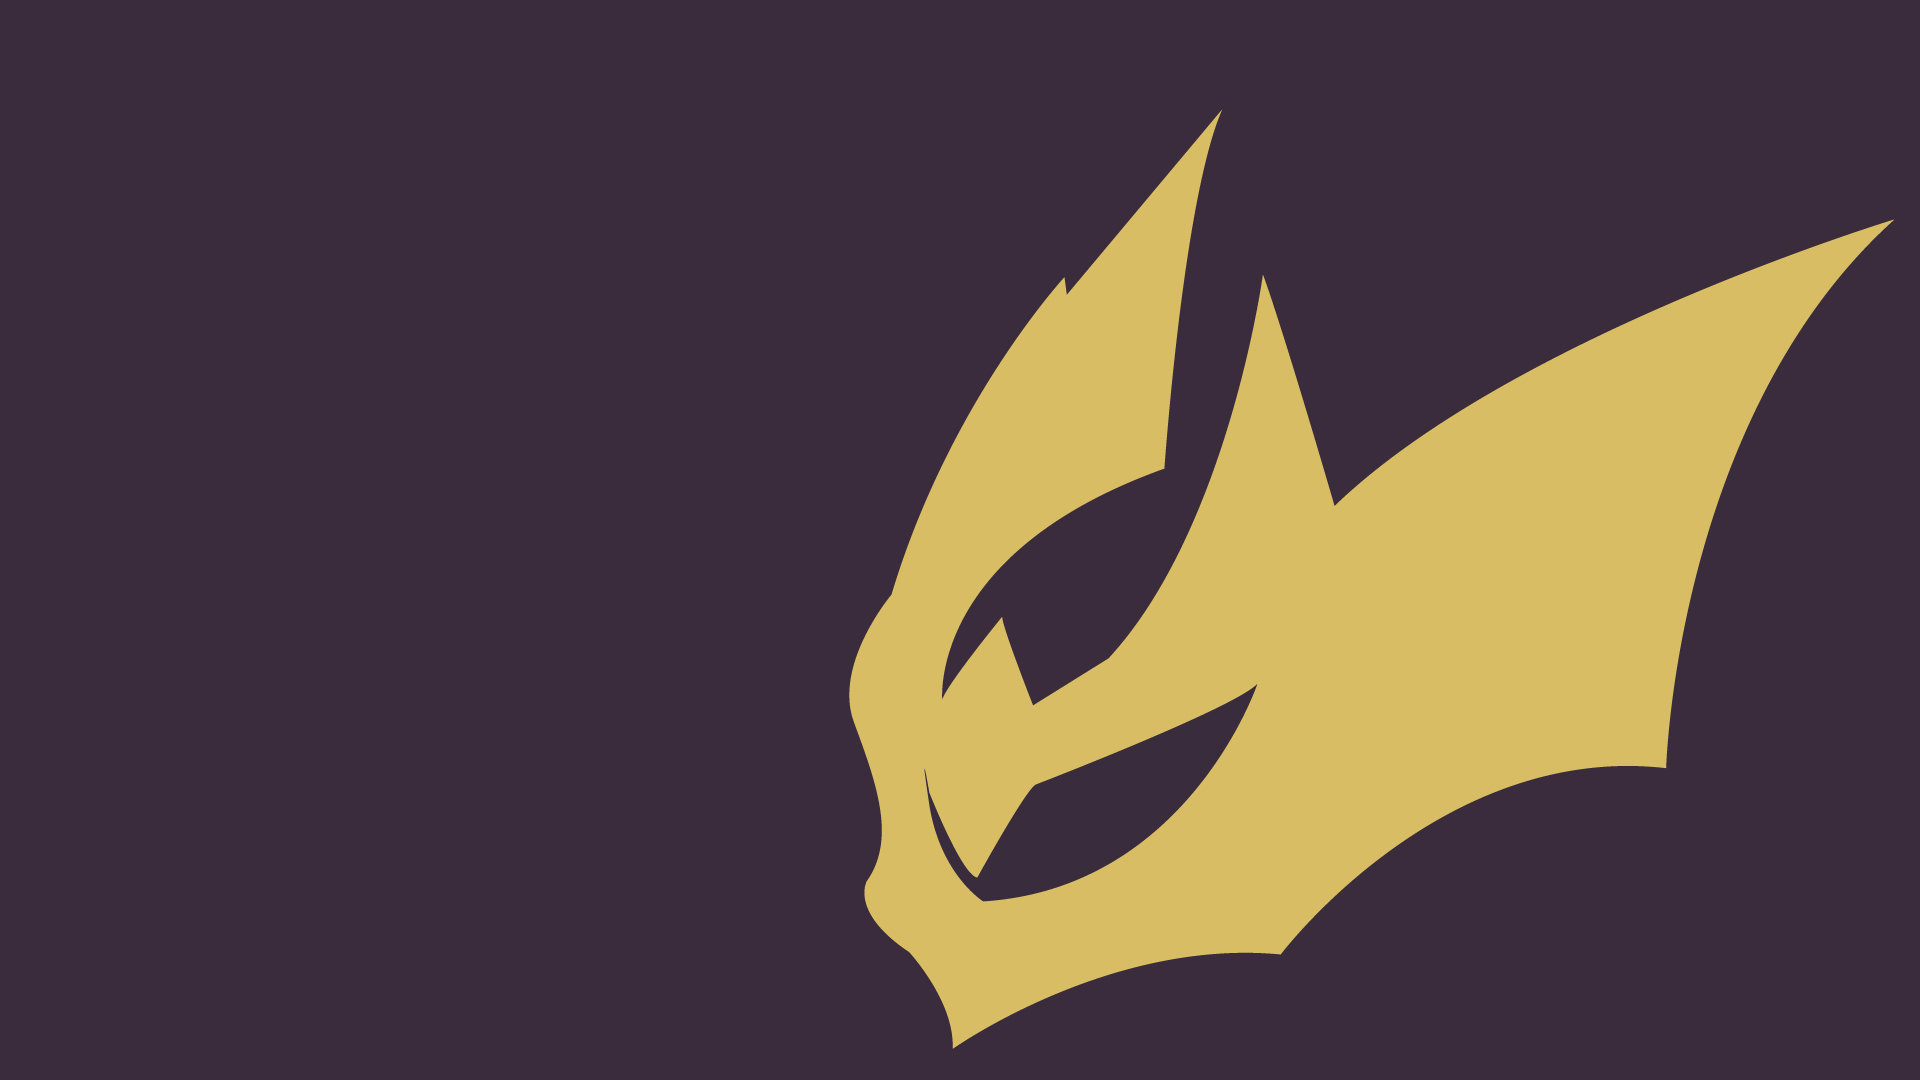 High resolution Giratina (Pokemon) hd 1920x1080 background ID:279344 for PC